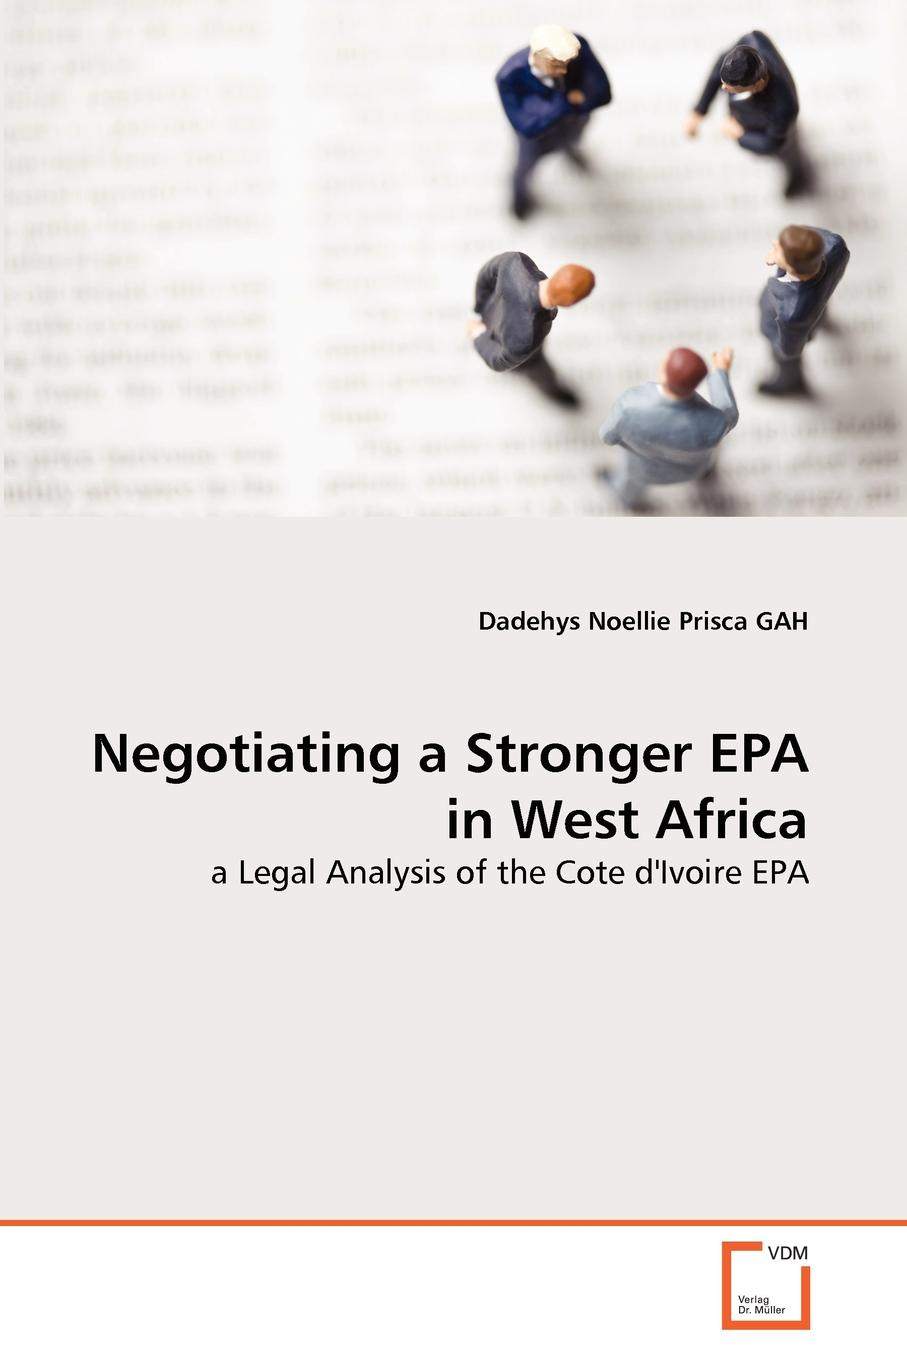 Dadehys Noellie Prisca GAH Negotiating a Stronger EPA in West Africa недорго, оригинальная цена